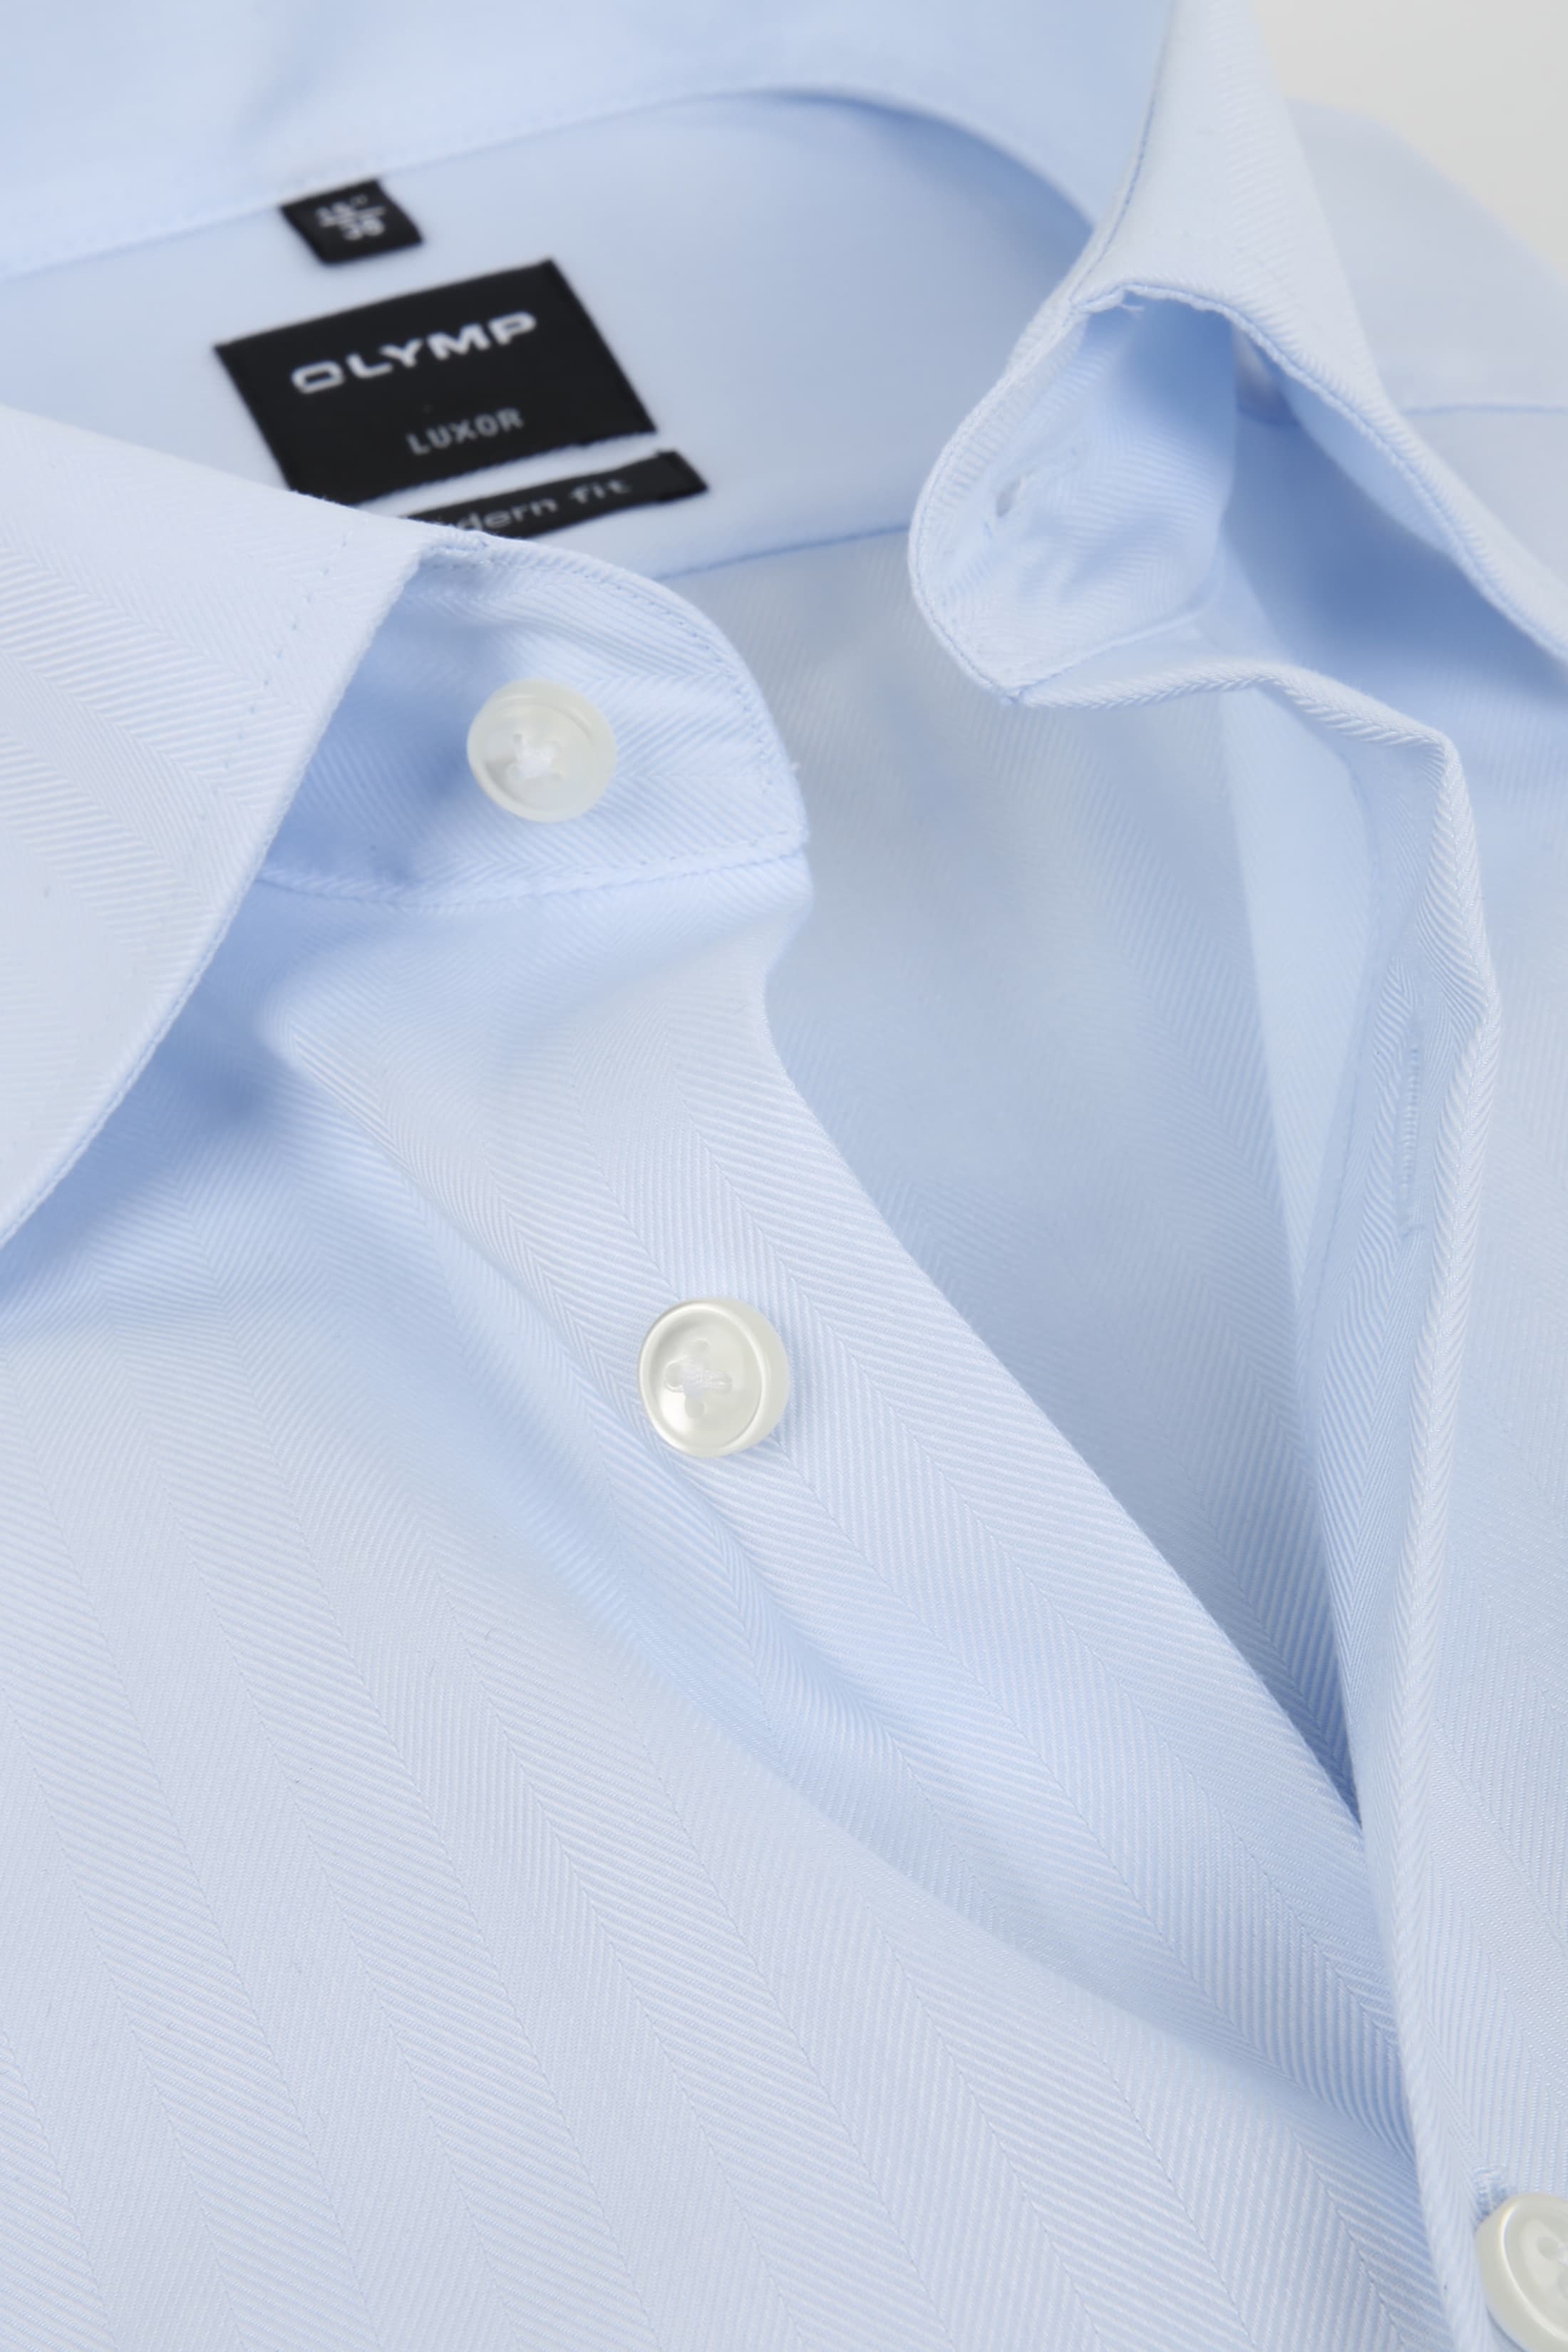 Olymp Luxor Shirt Slim Line Light Blue Herringbone